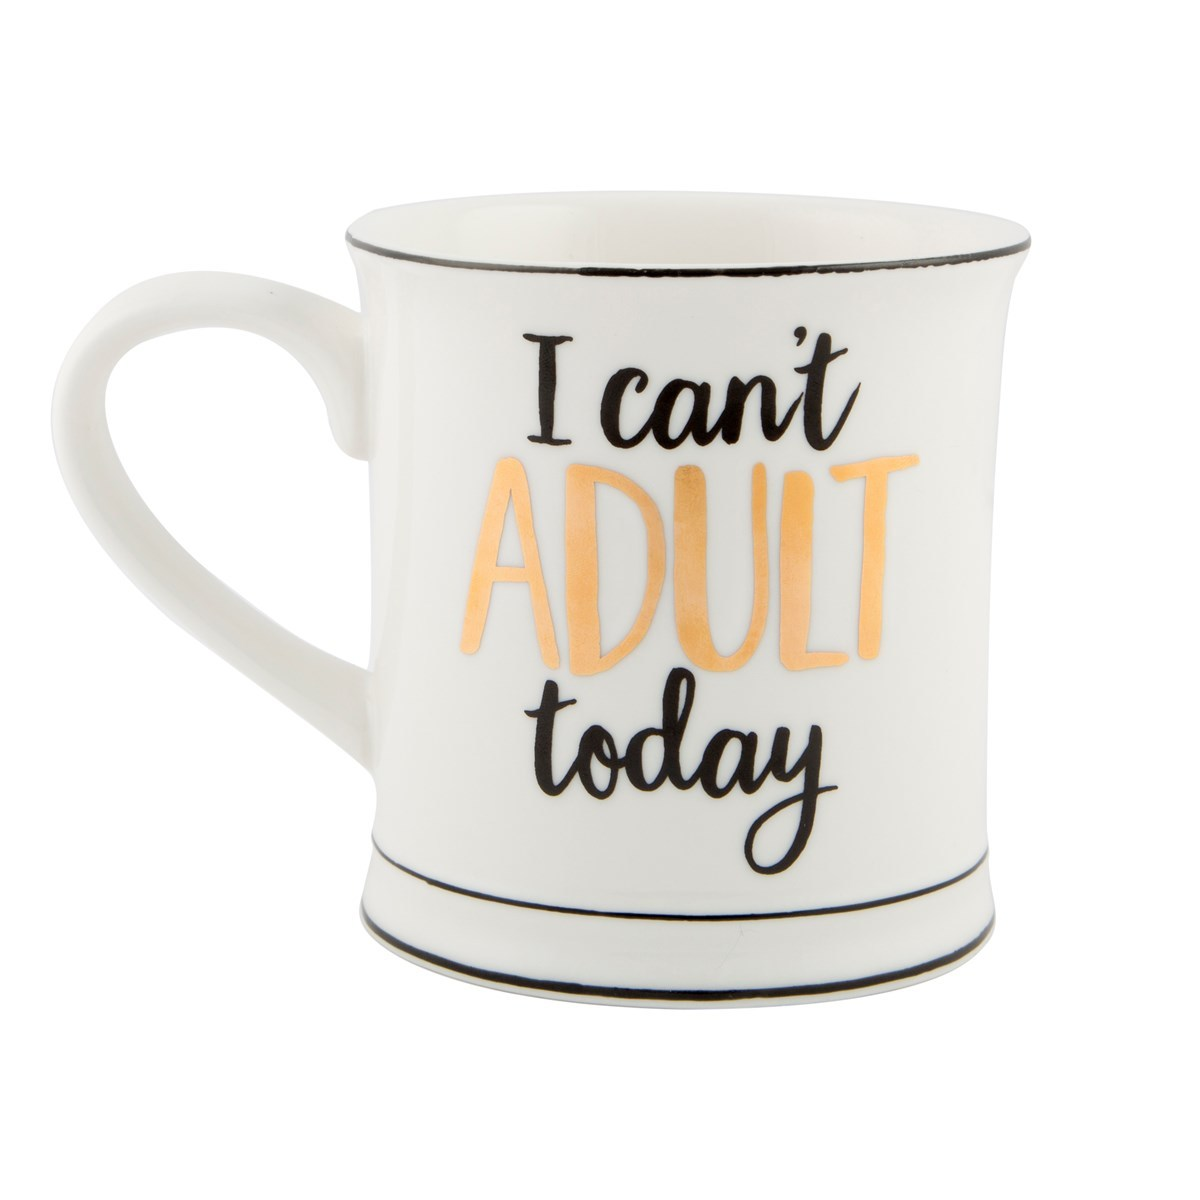 Metallic Monochrome Mug (I Can't Adult Today) image